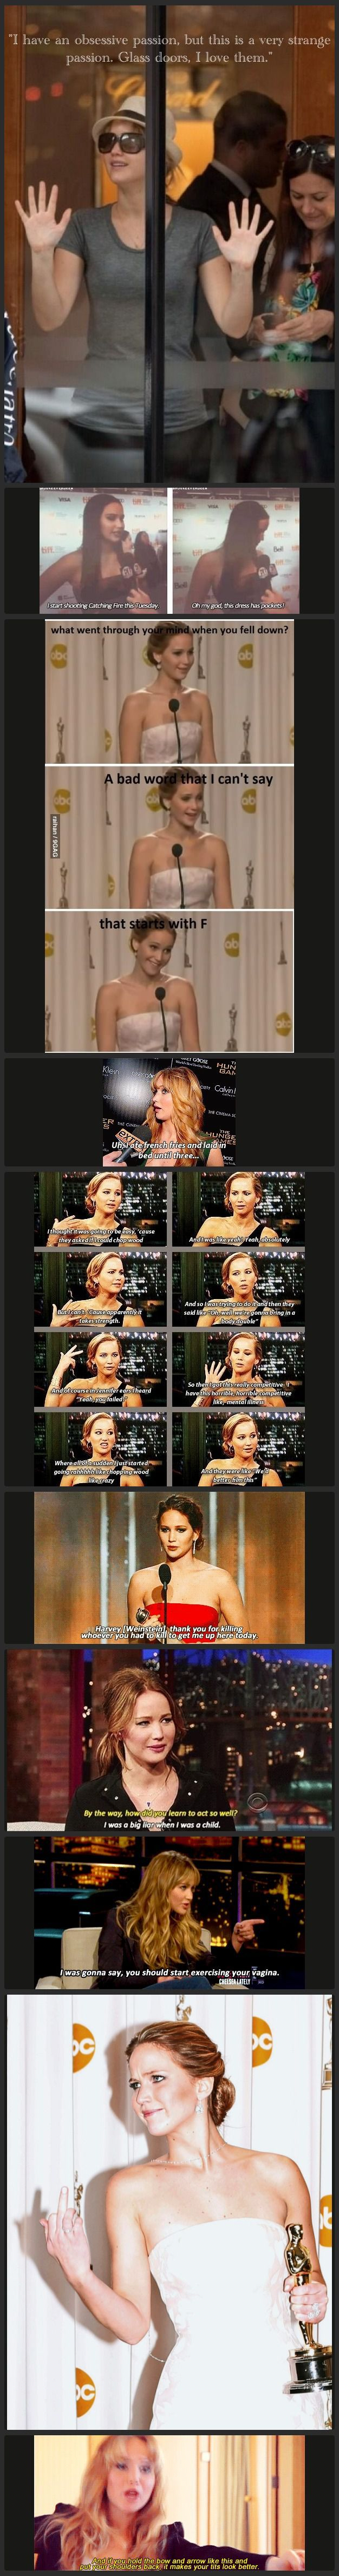 Oh, Jennifer Lawrence. I love her so much